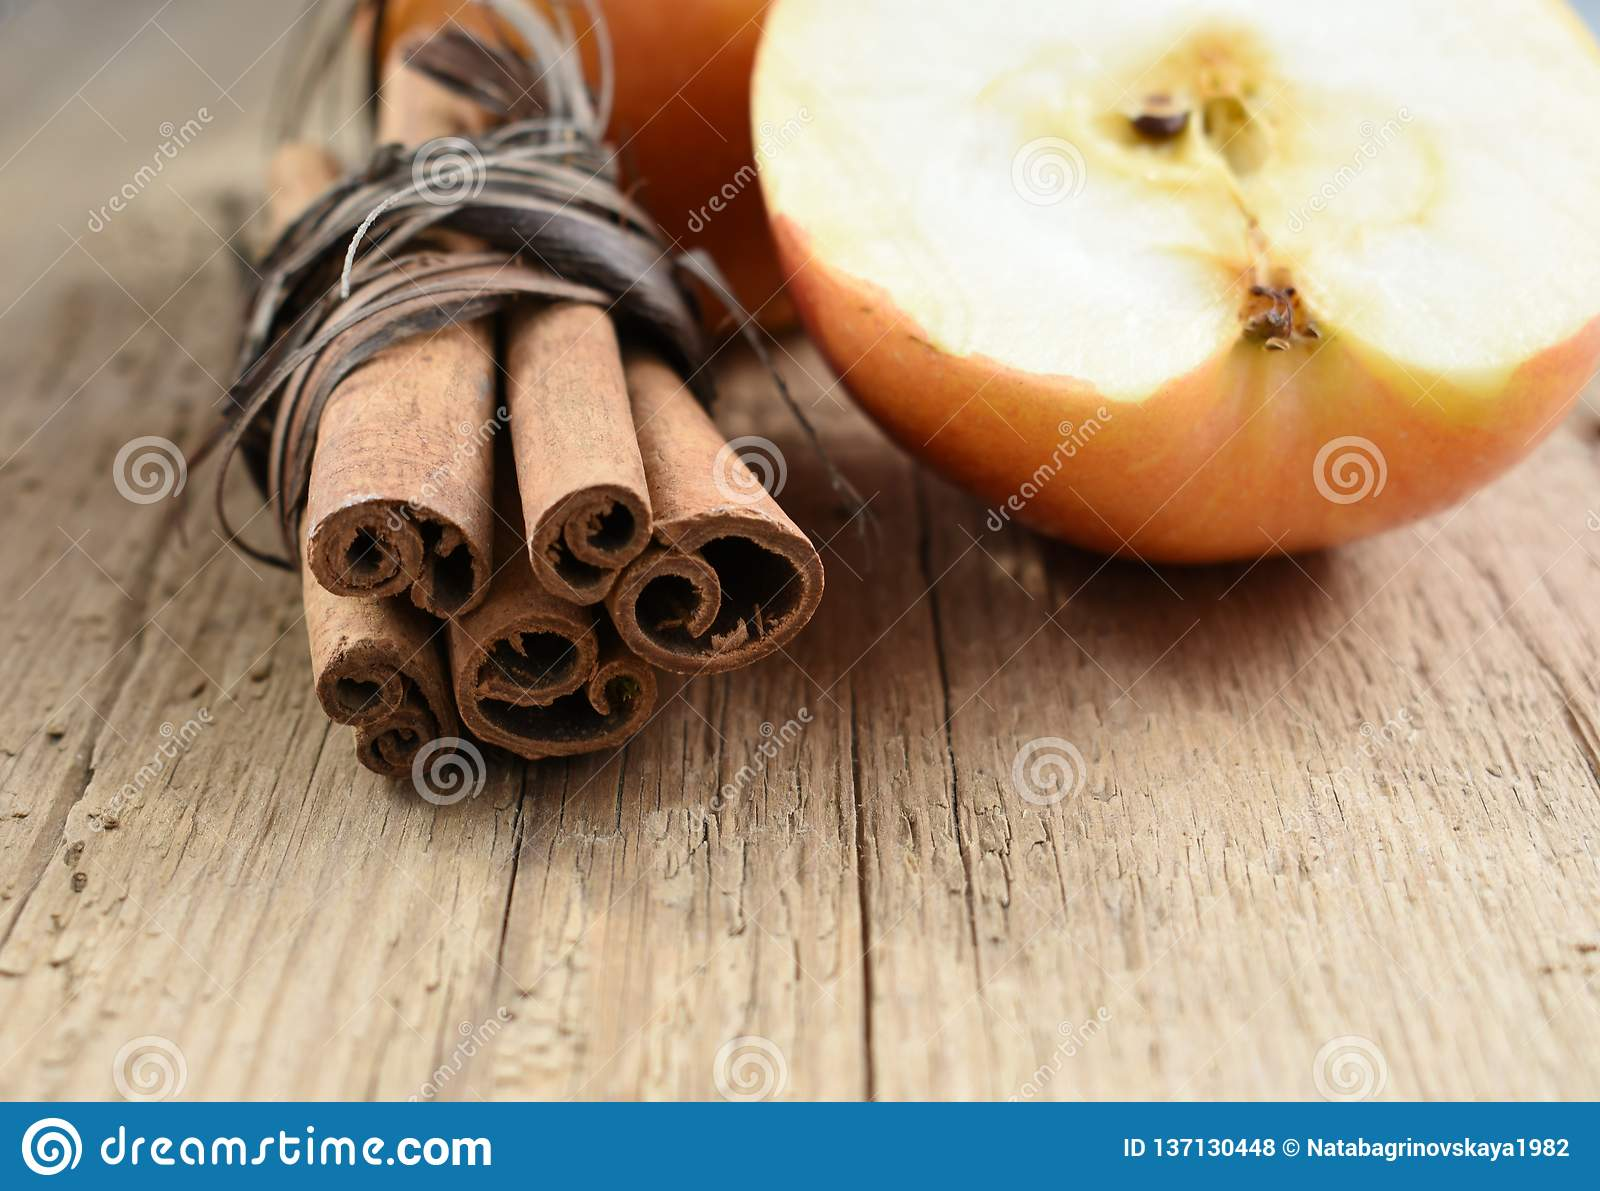 Cinnamon sticks and apple on wooden table ingredient